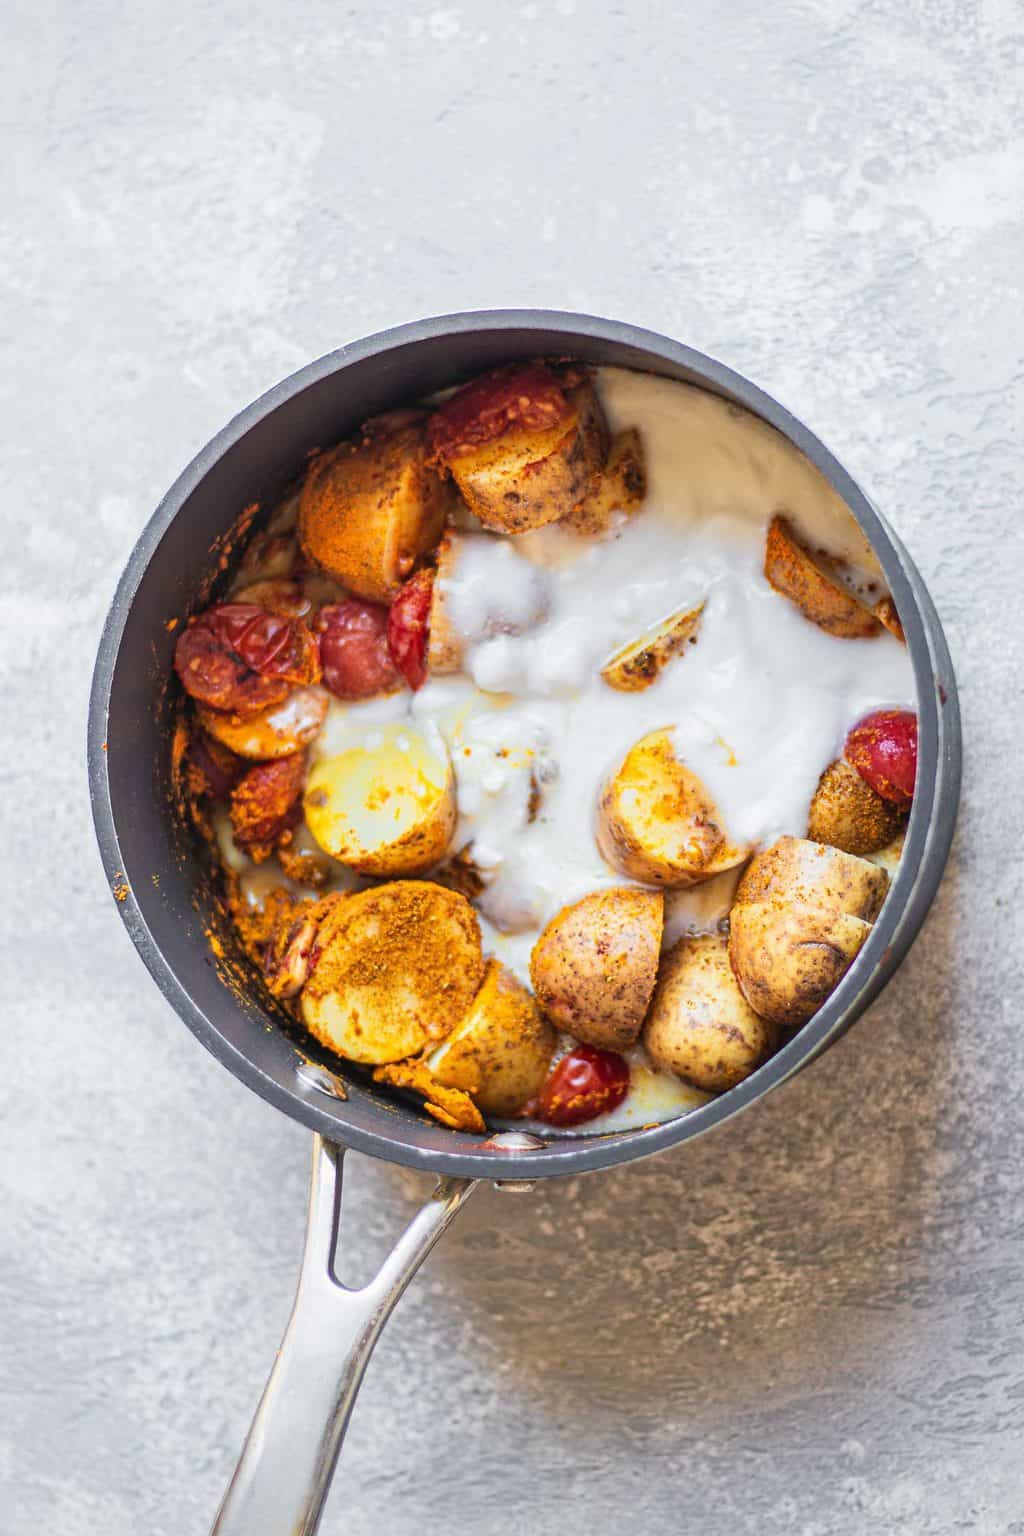 Potato curry ingredients in a saucepan